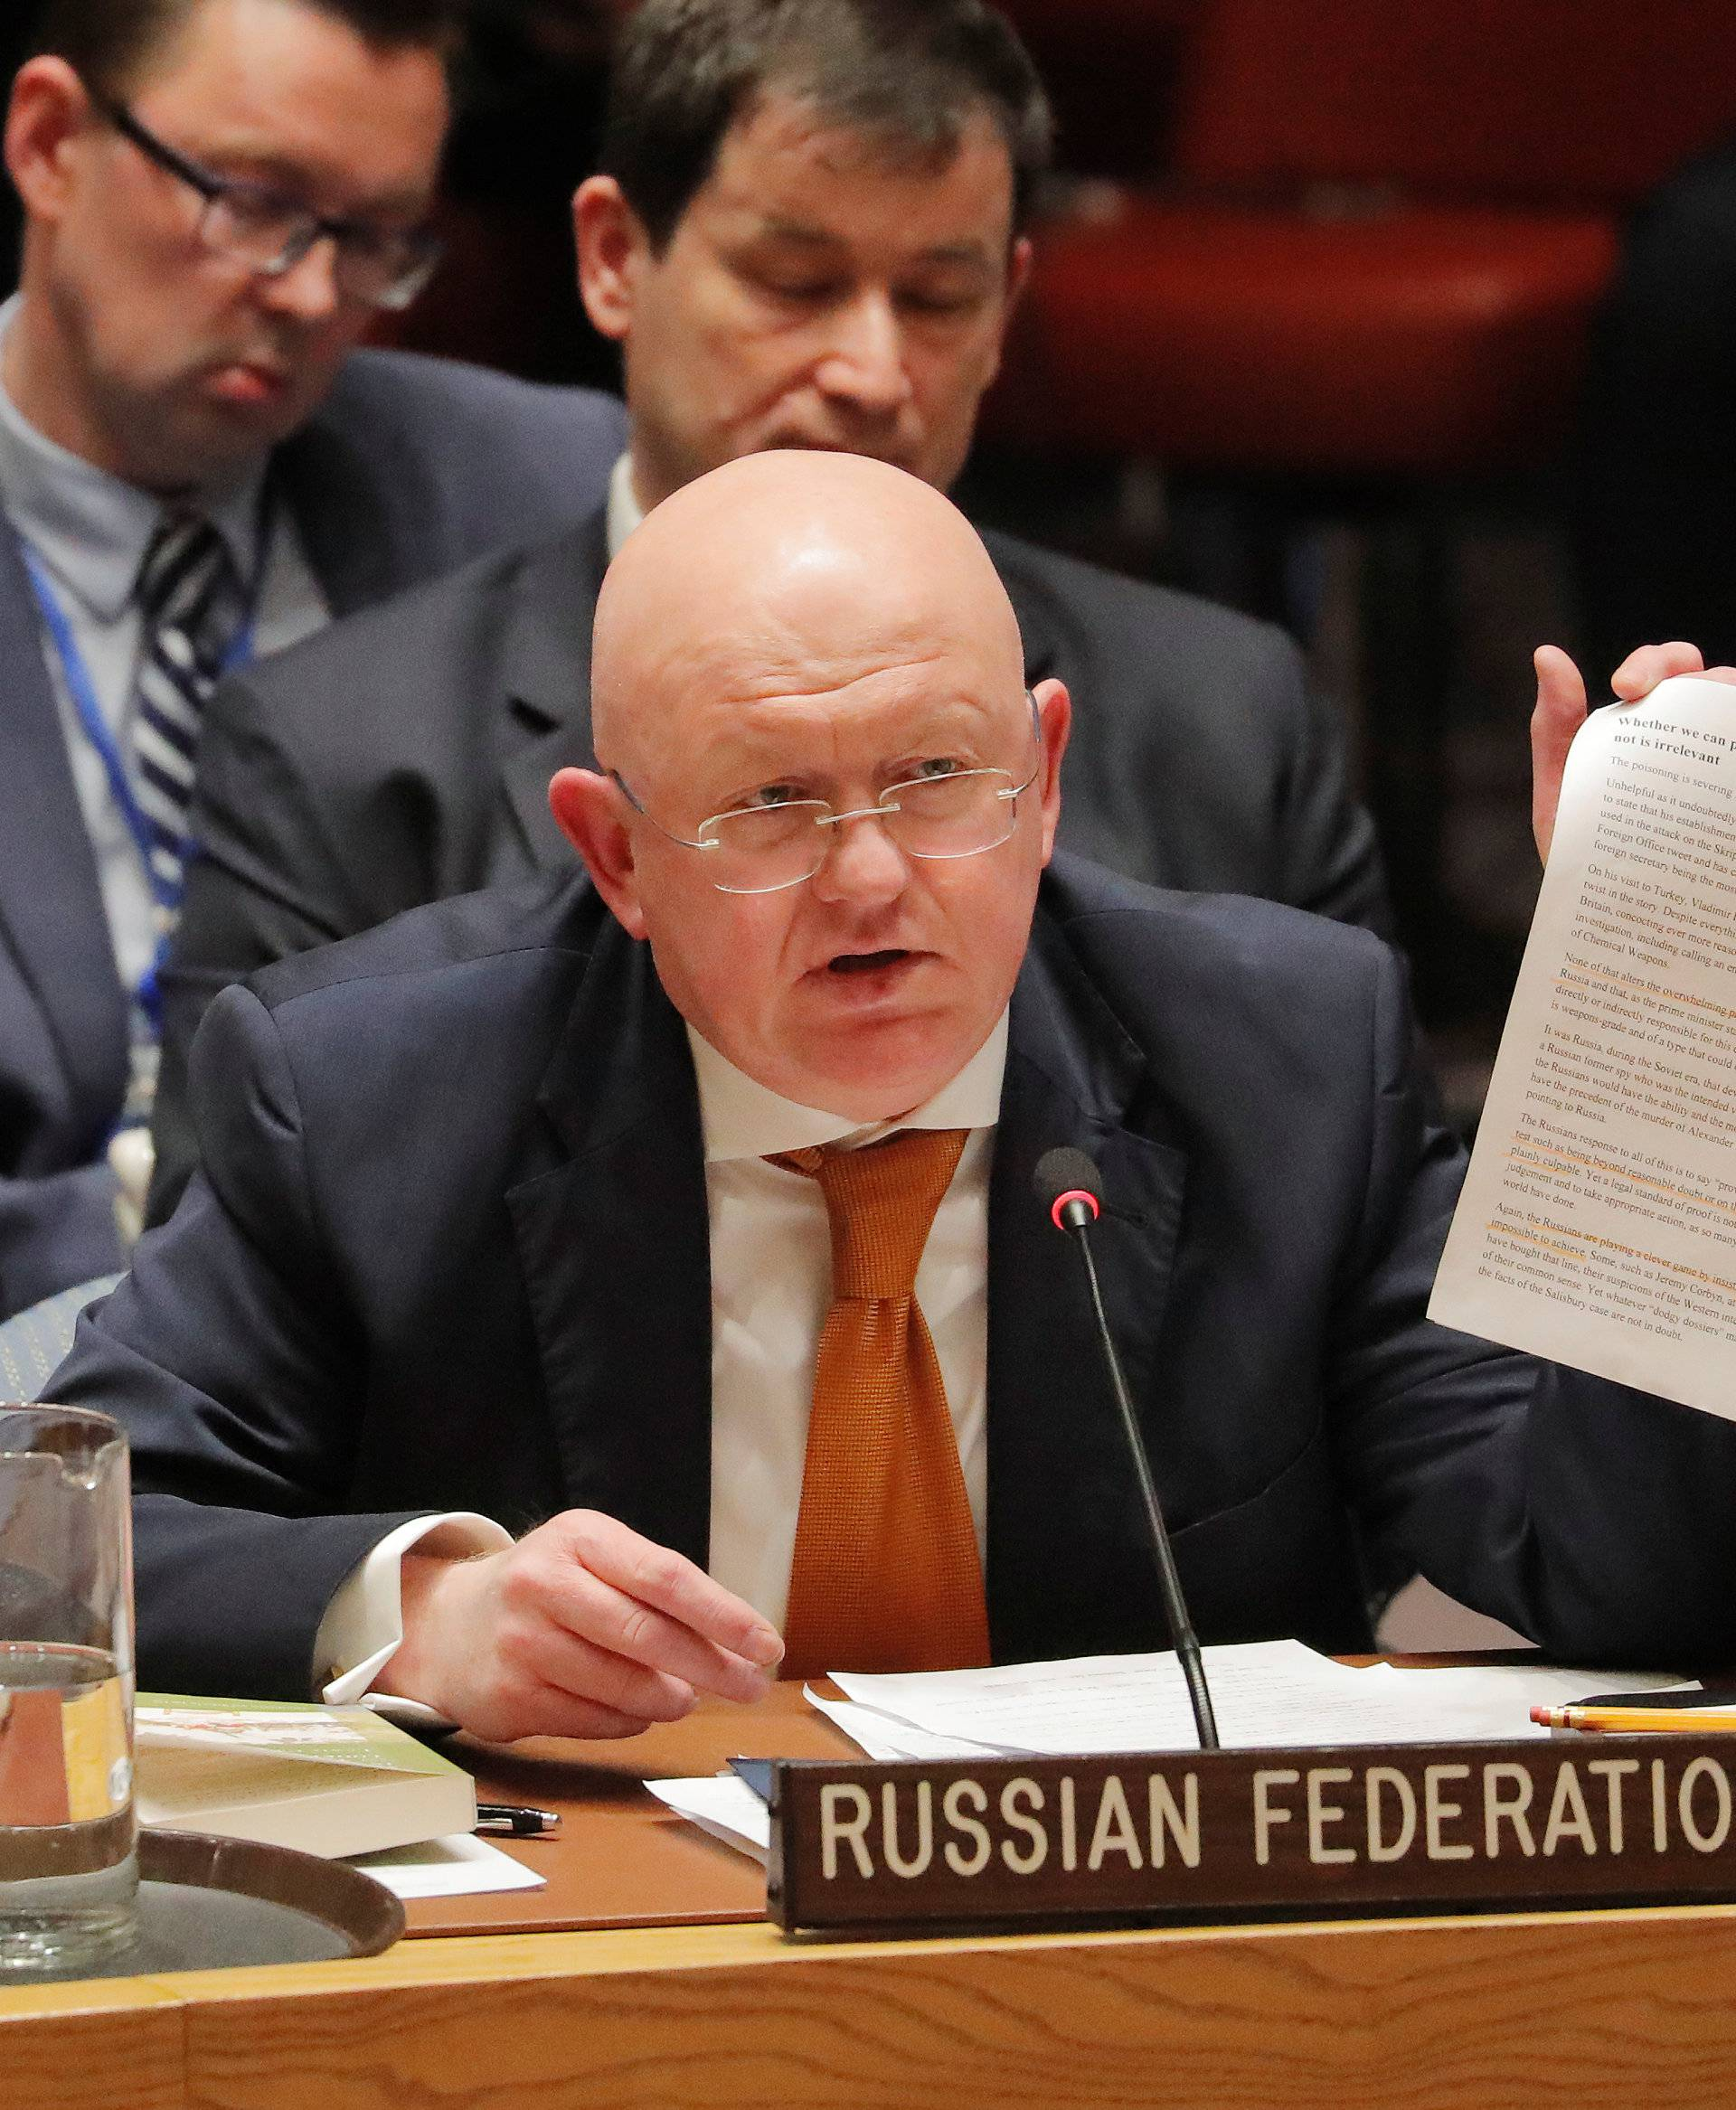 Russian Ambassador to the U.N. Vasily Nebenzya holds a paper up as he speaks regarding an incident in Salisbury, during a meeting of the U.N. Security Council at U.N. headquarters in New York